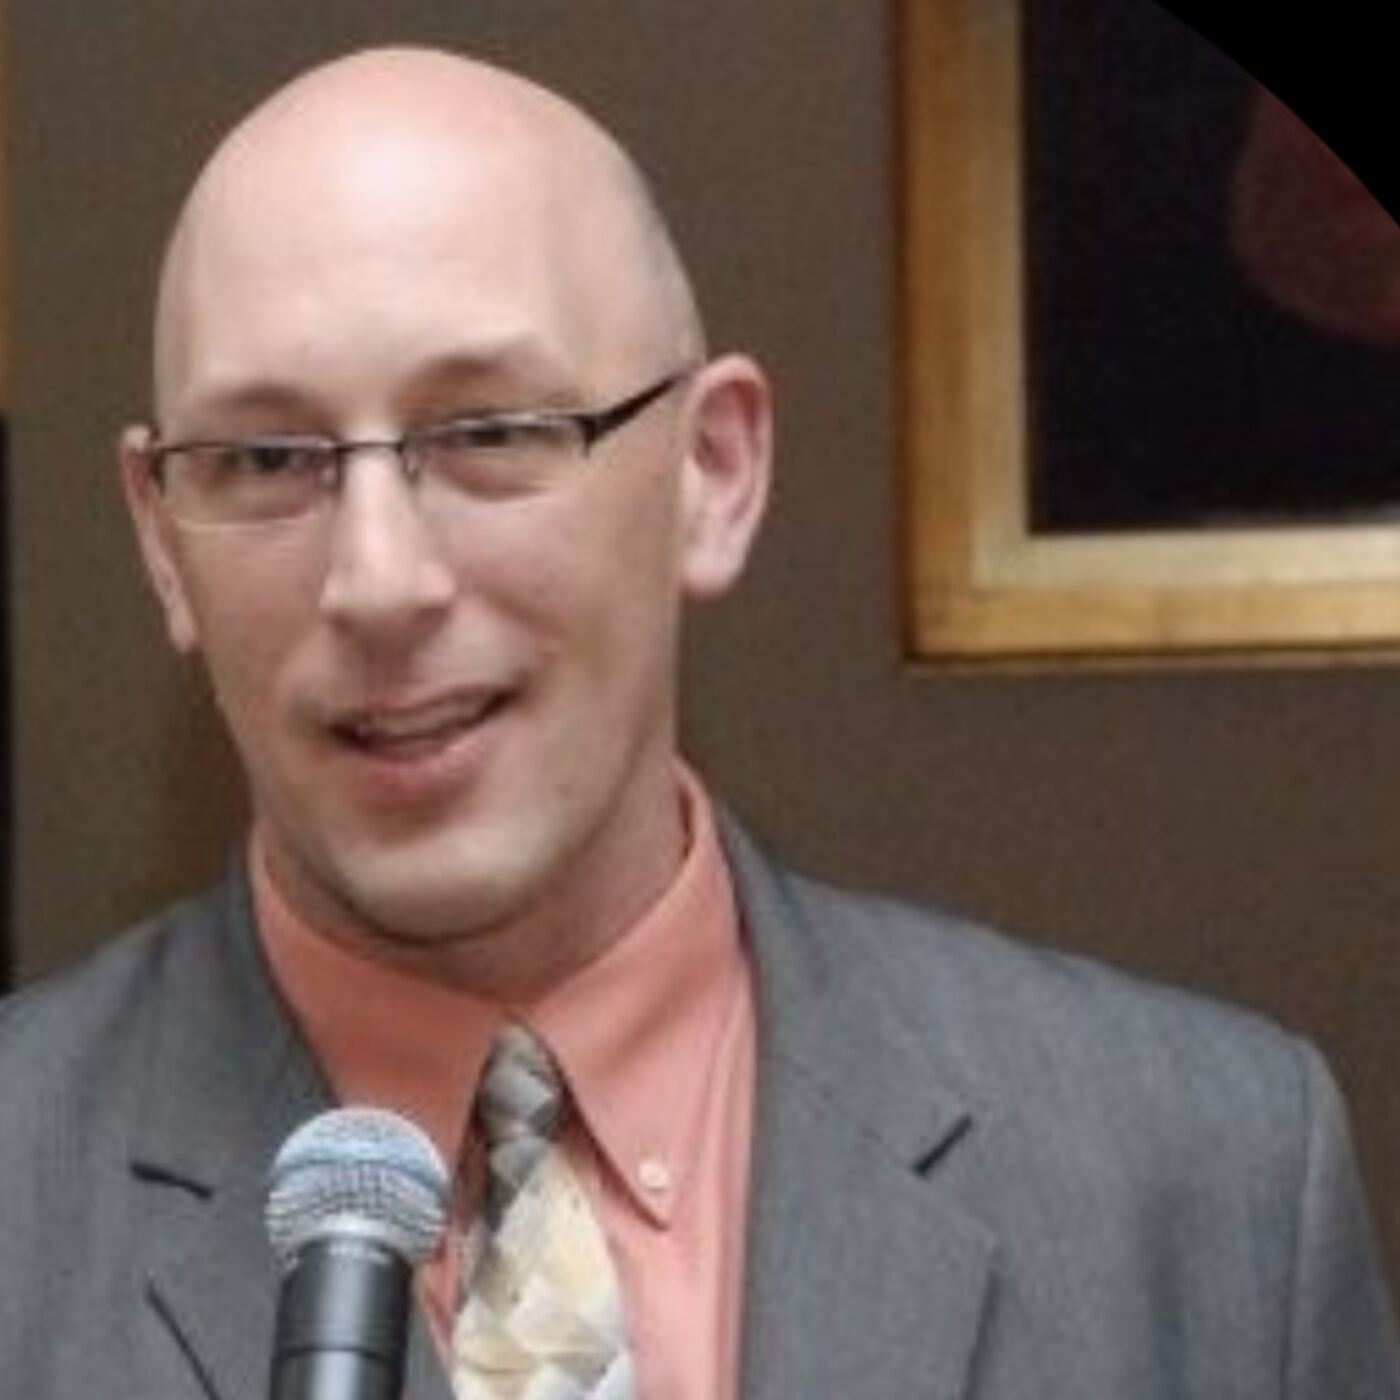 Meet Jason Cochran, RPCV Panama, Leader at USDA's Foreign Agriculture Service, Career Coach and employer of many RPCVs.